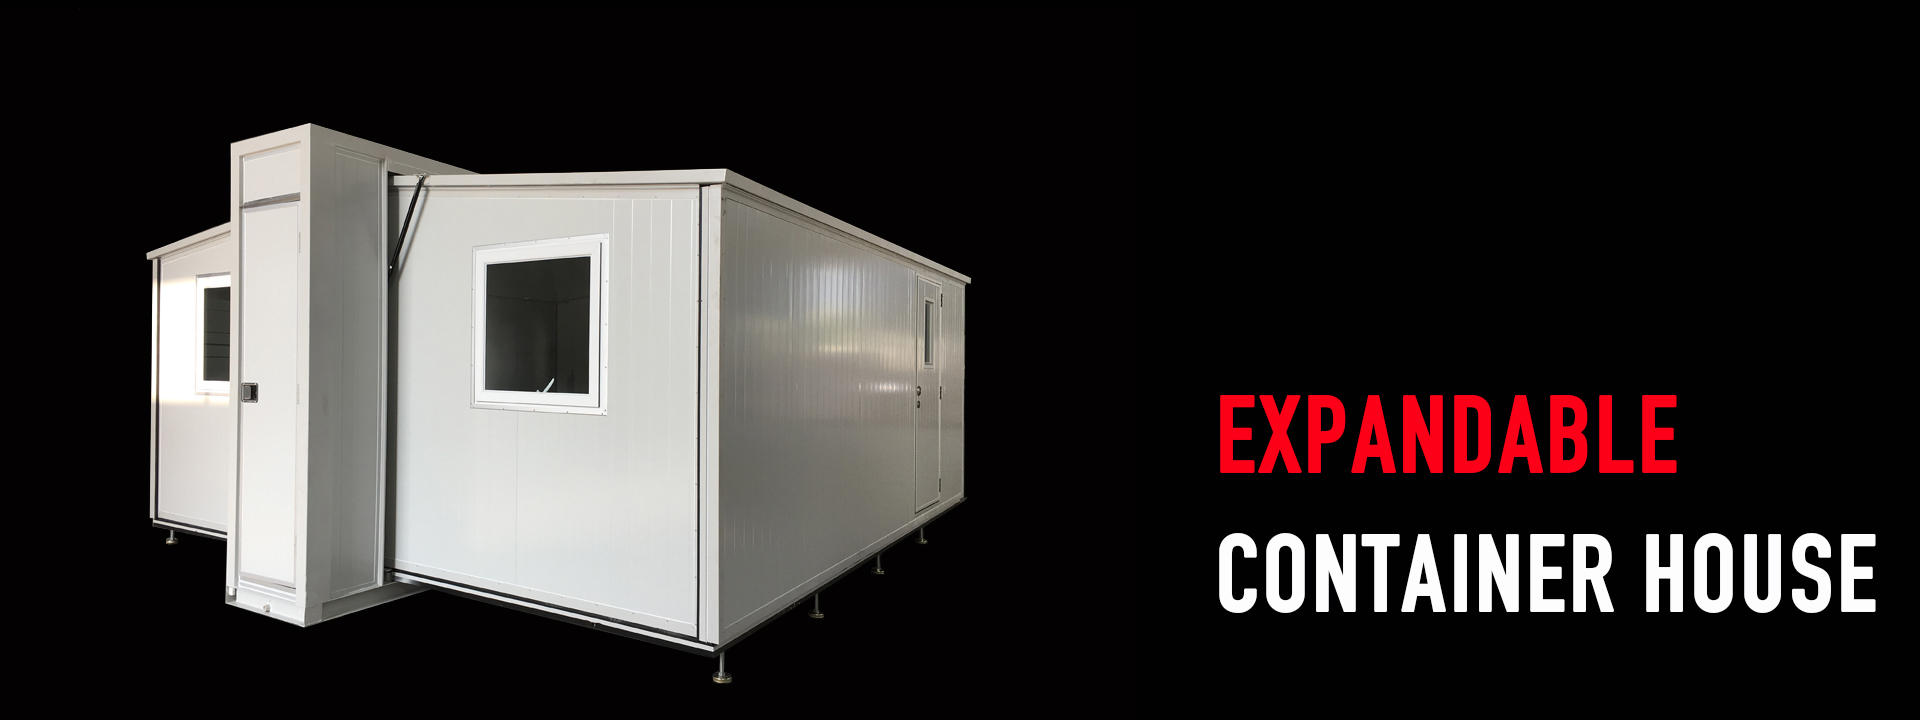 category-expandable shelter-WELLCAMP, WELLCAMP prefab house, WELLCAMP container house-img-1